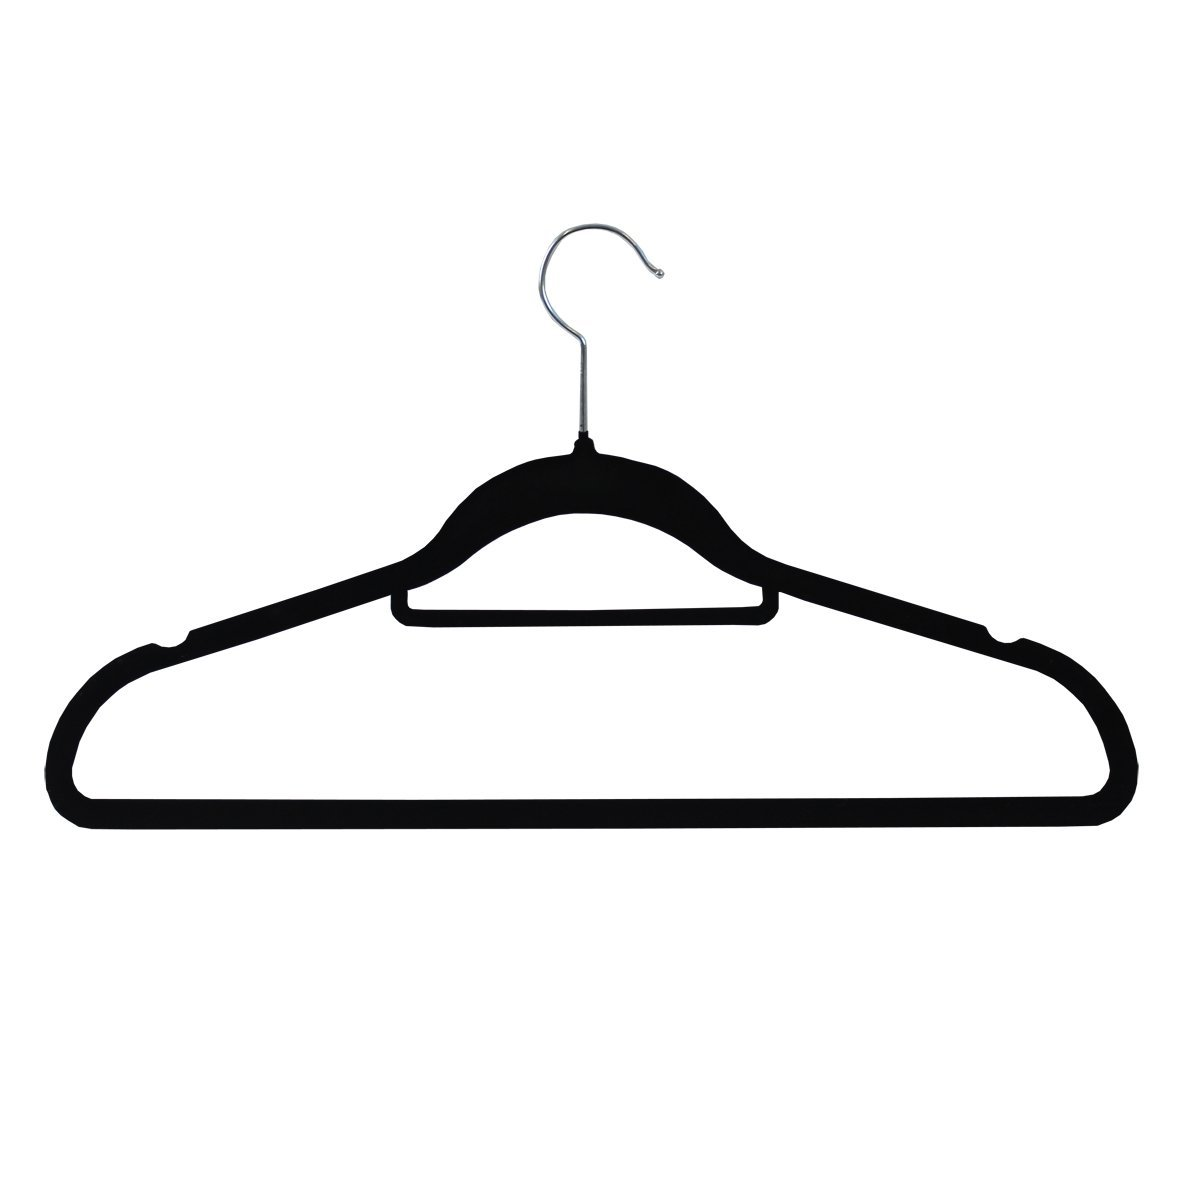 Clothes Hanger Drawing